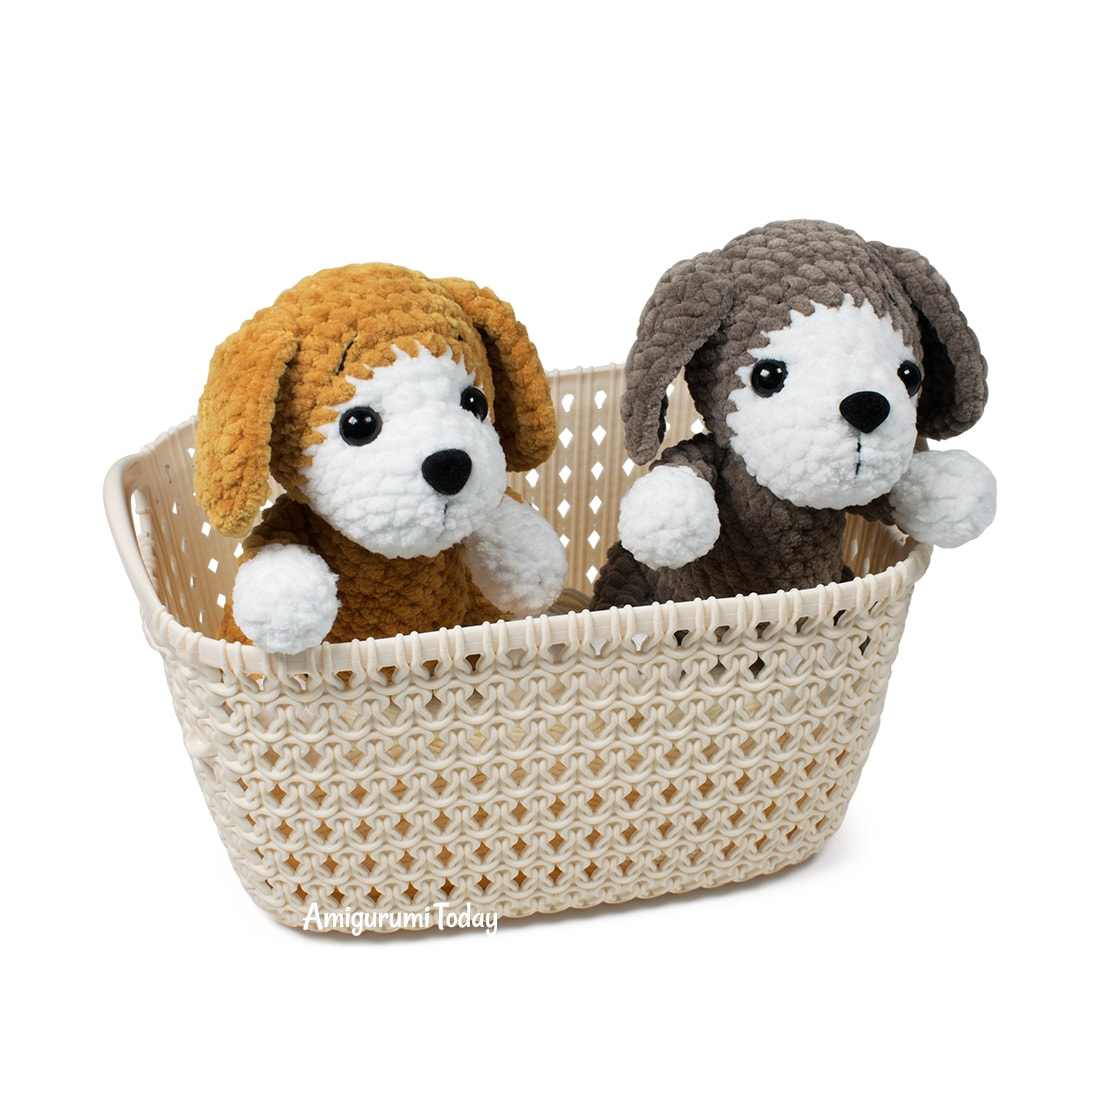 Plush amigurumi dog crochet pattern by Amigurumi Today